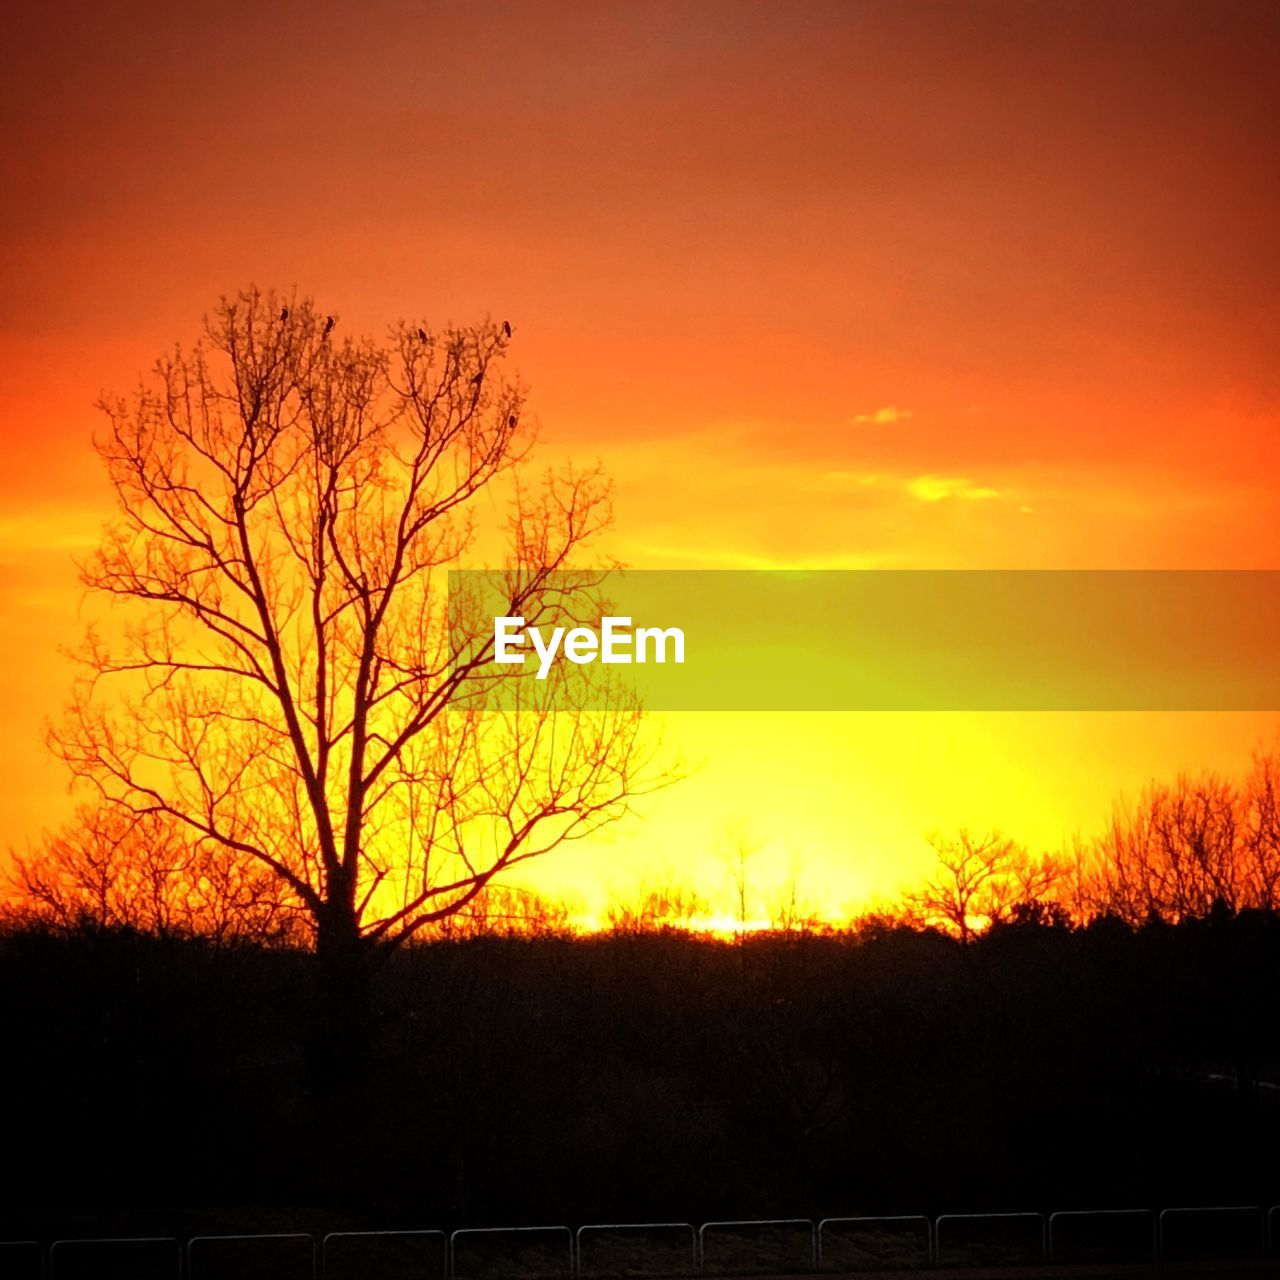 sunset, orange color, beauty in nature, nature, silhouette, tranquil scene, tree, tranquility, scenics, bare tree, outdoors, landscape, no people, sky, day